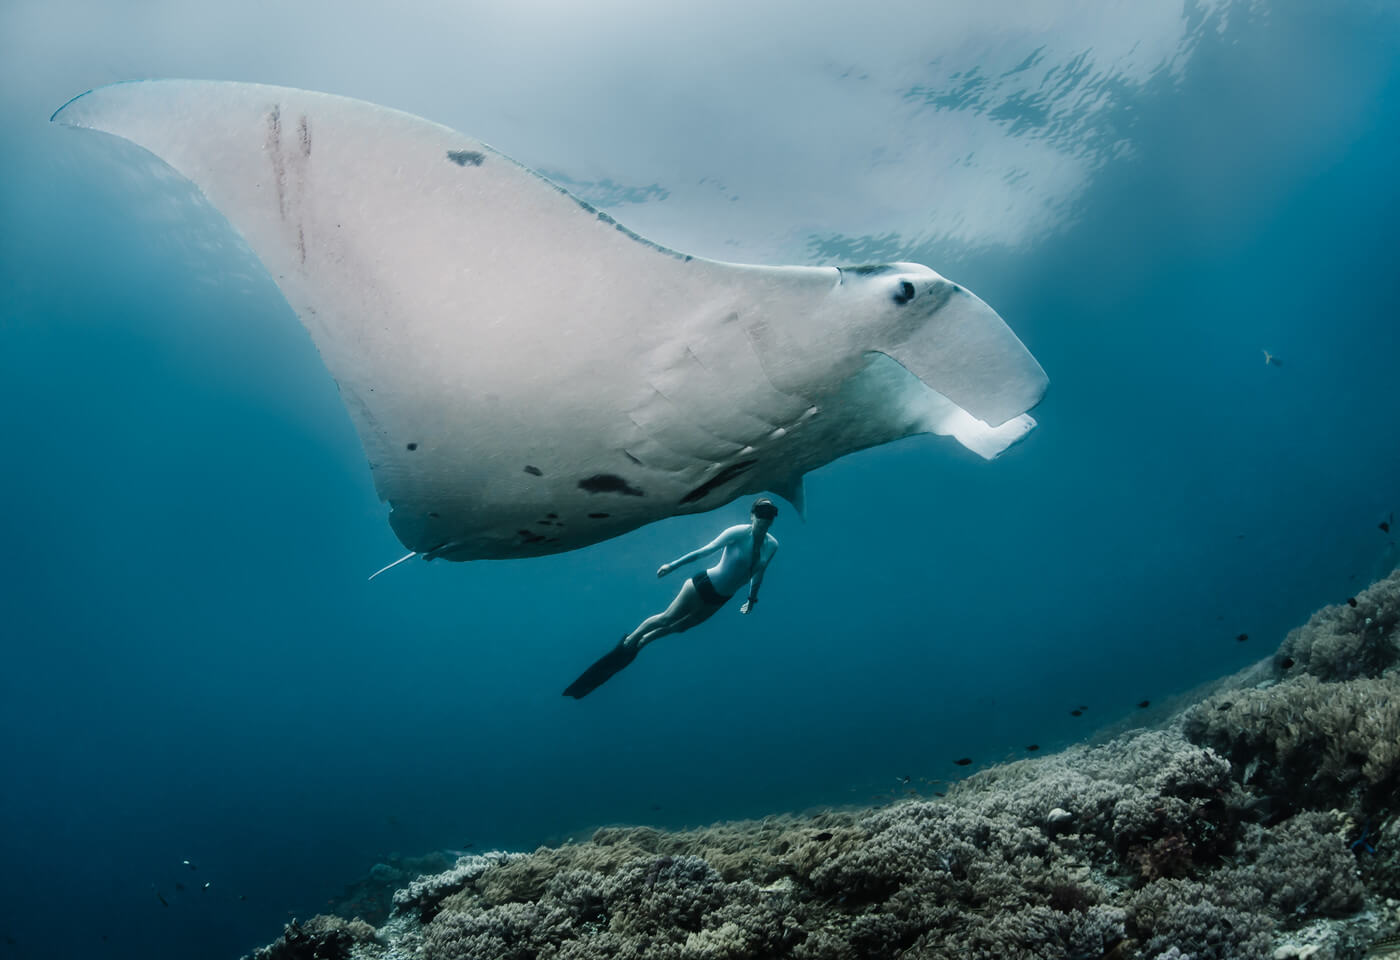 image of a manta ray in the Raja Ampat region, image by Shawn Heinrichs